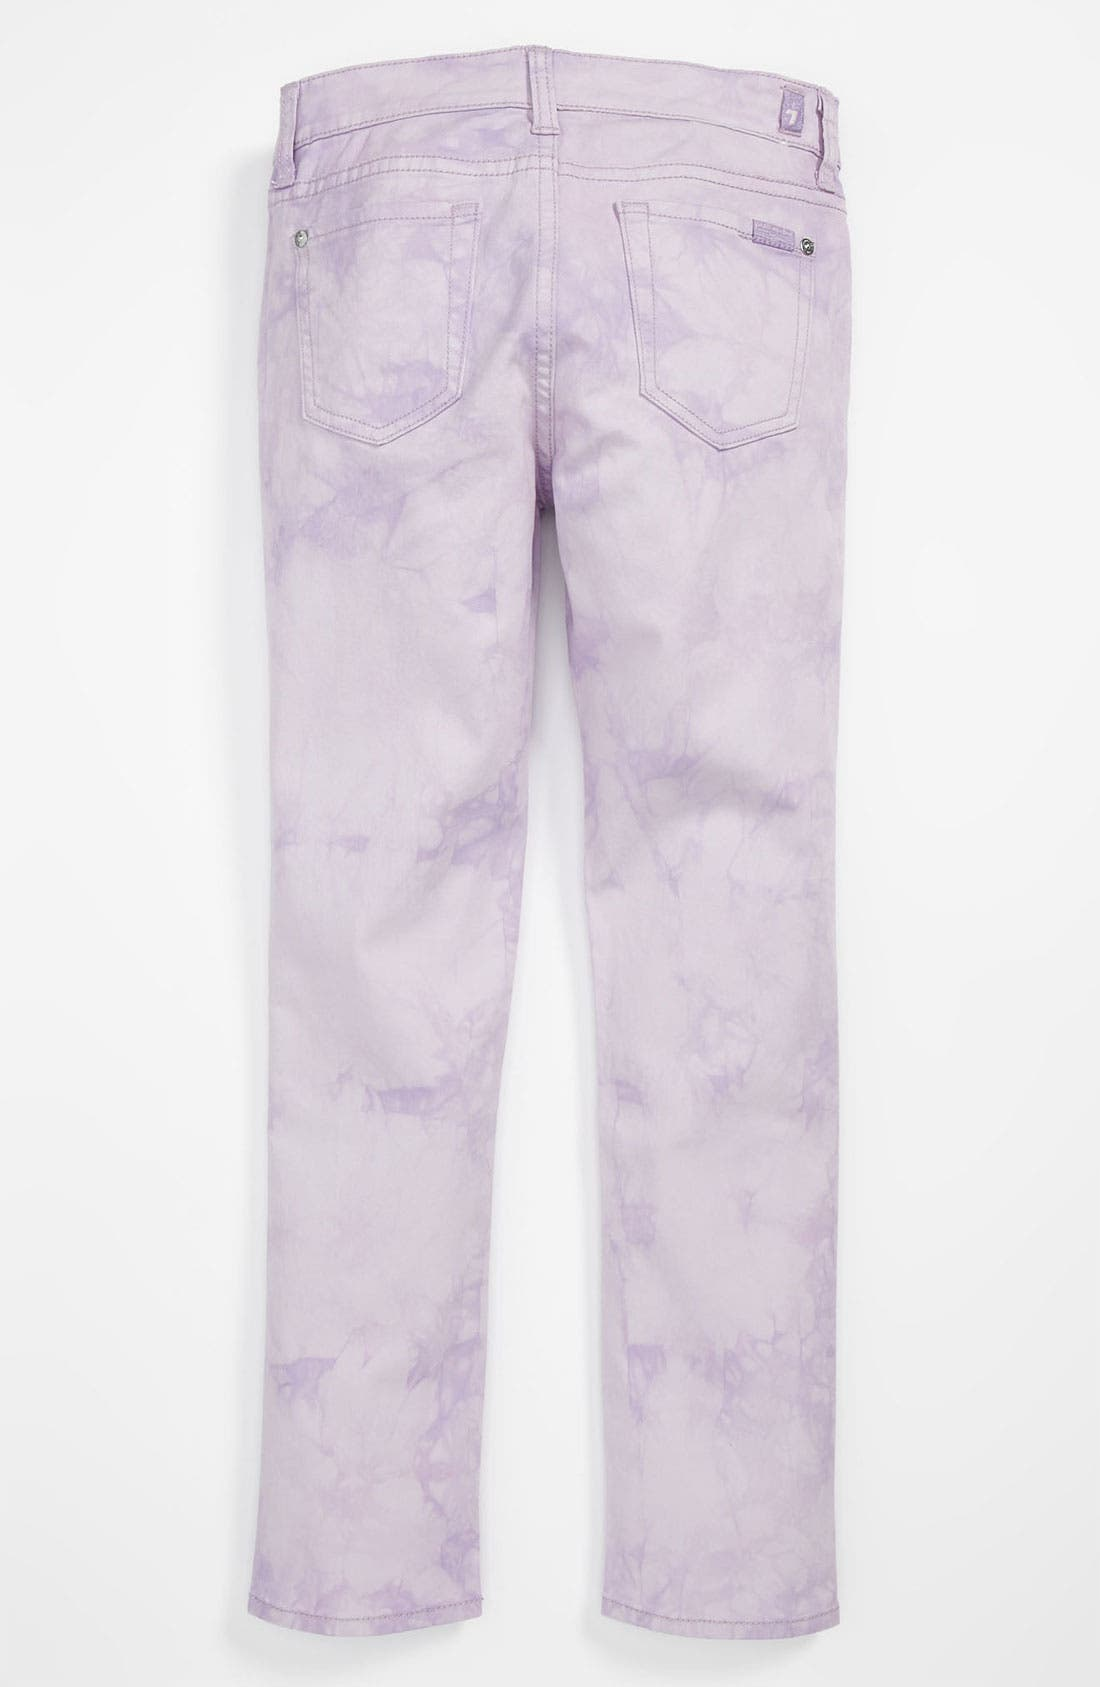 Alternate Image 1 Selected - 7 For All Mankind® 'The Skinny' Color Jeans (Big Girls)